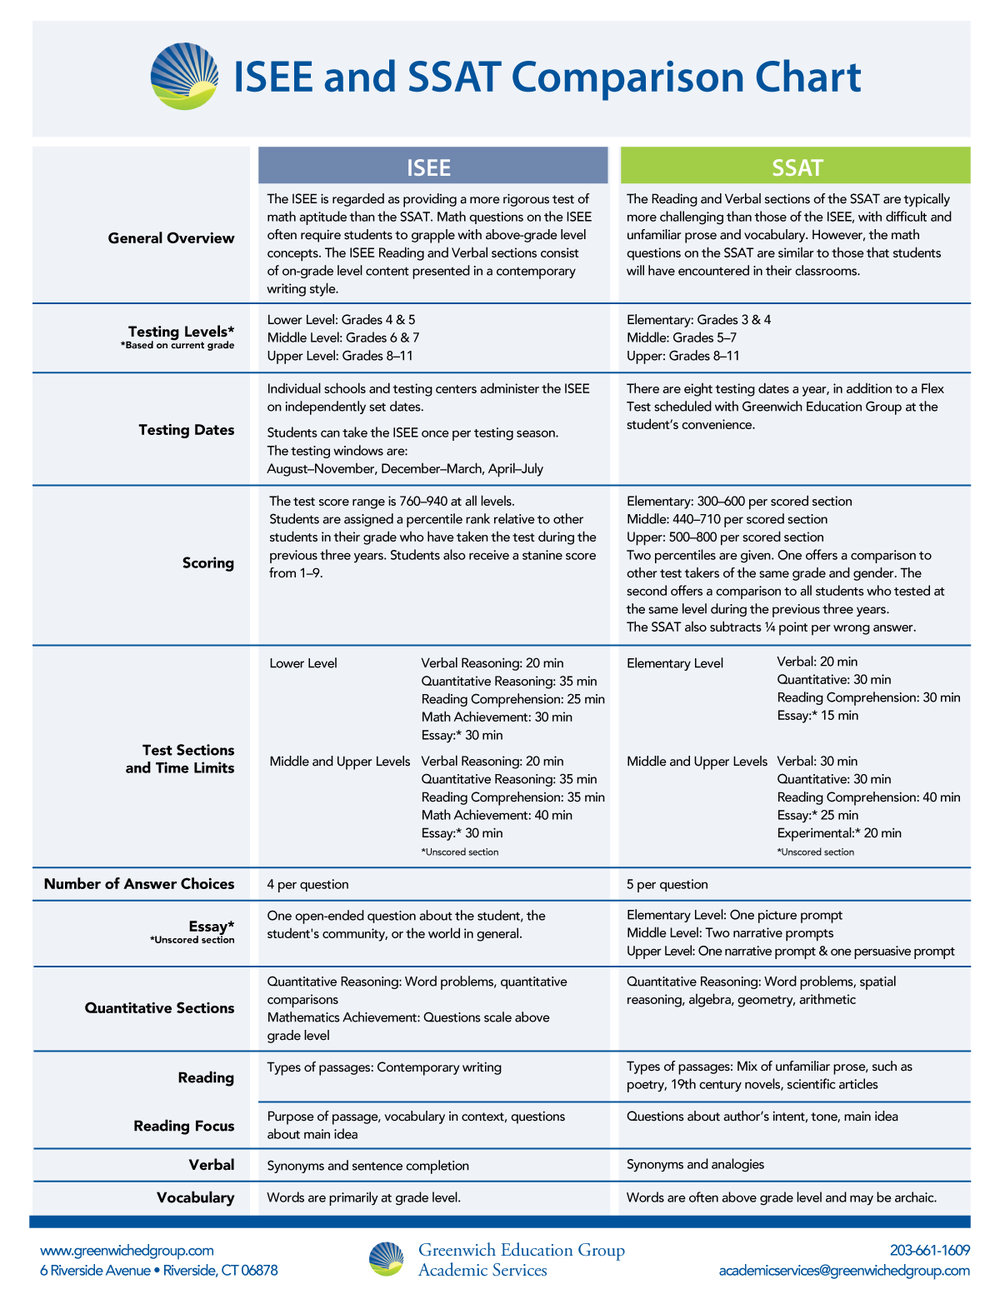 SSAT_ISEE-Comparison-Chart.Updates.jpg